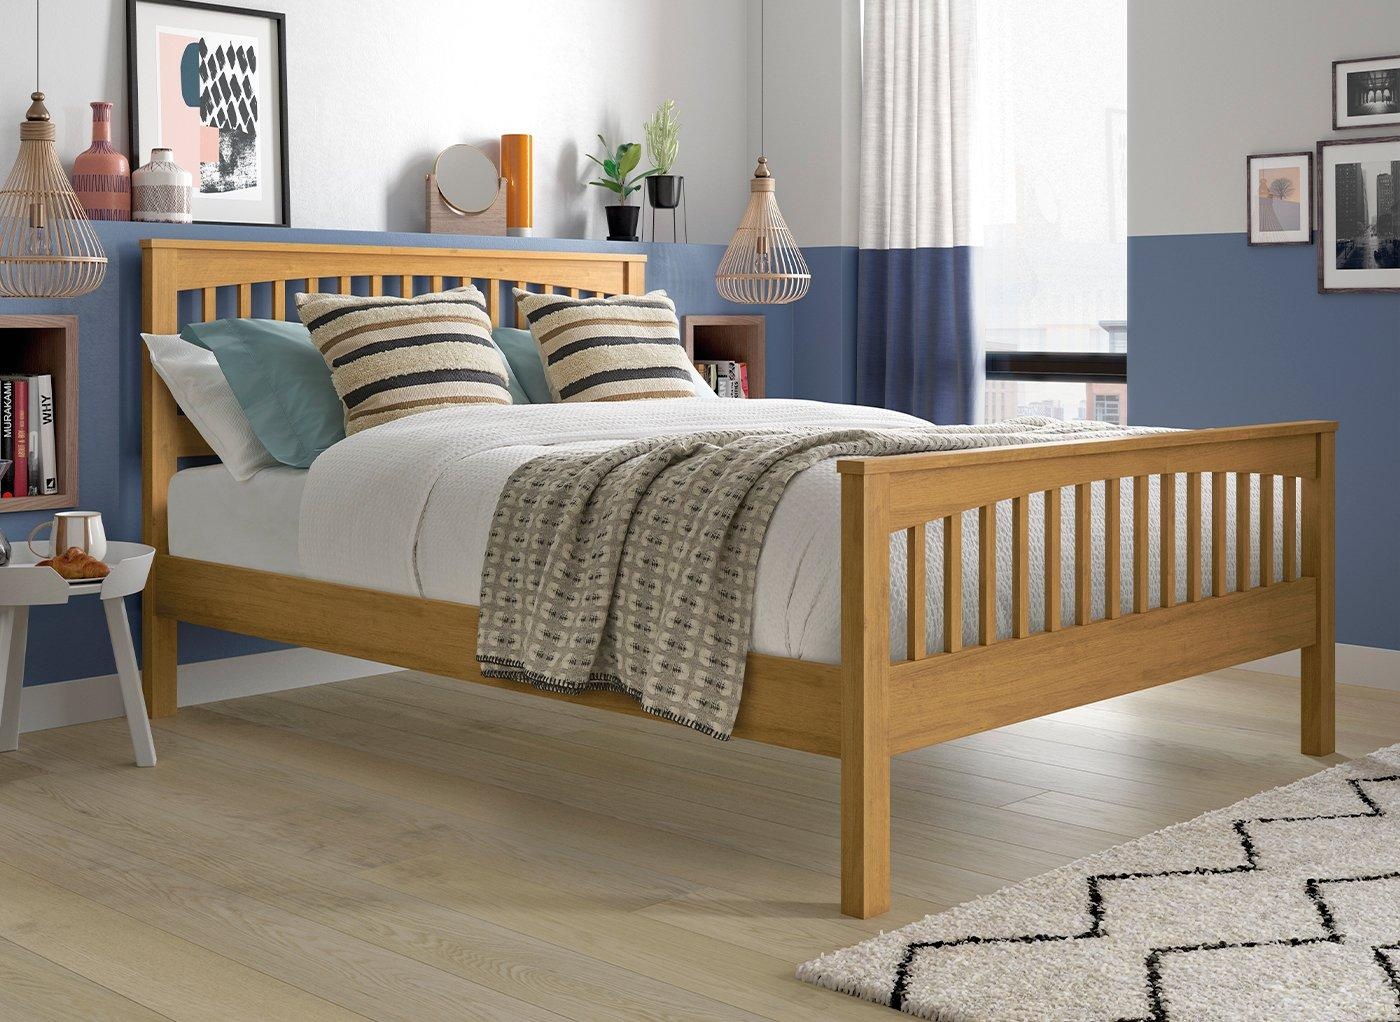 Fleetwood Oak Wooden Bed Frame 5'0 King BROWN